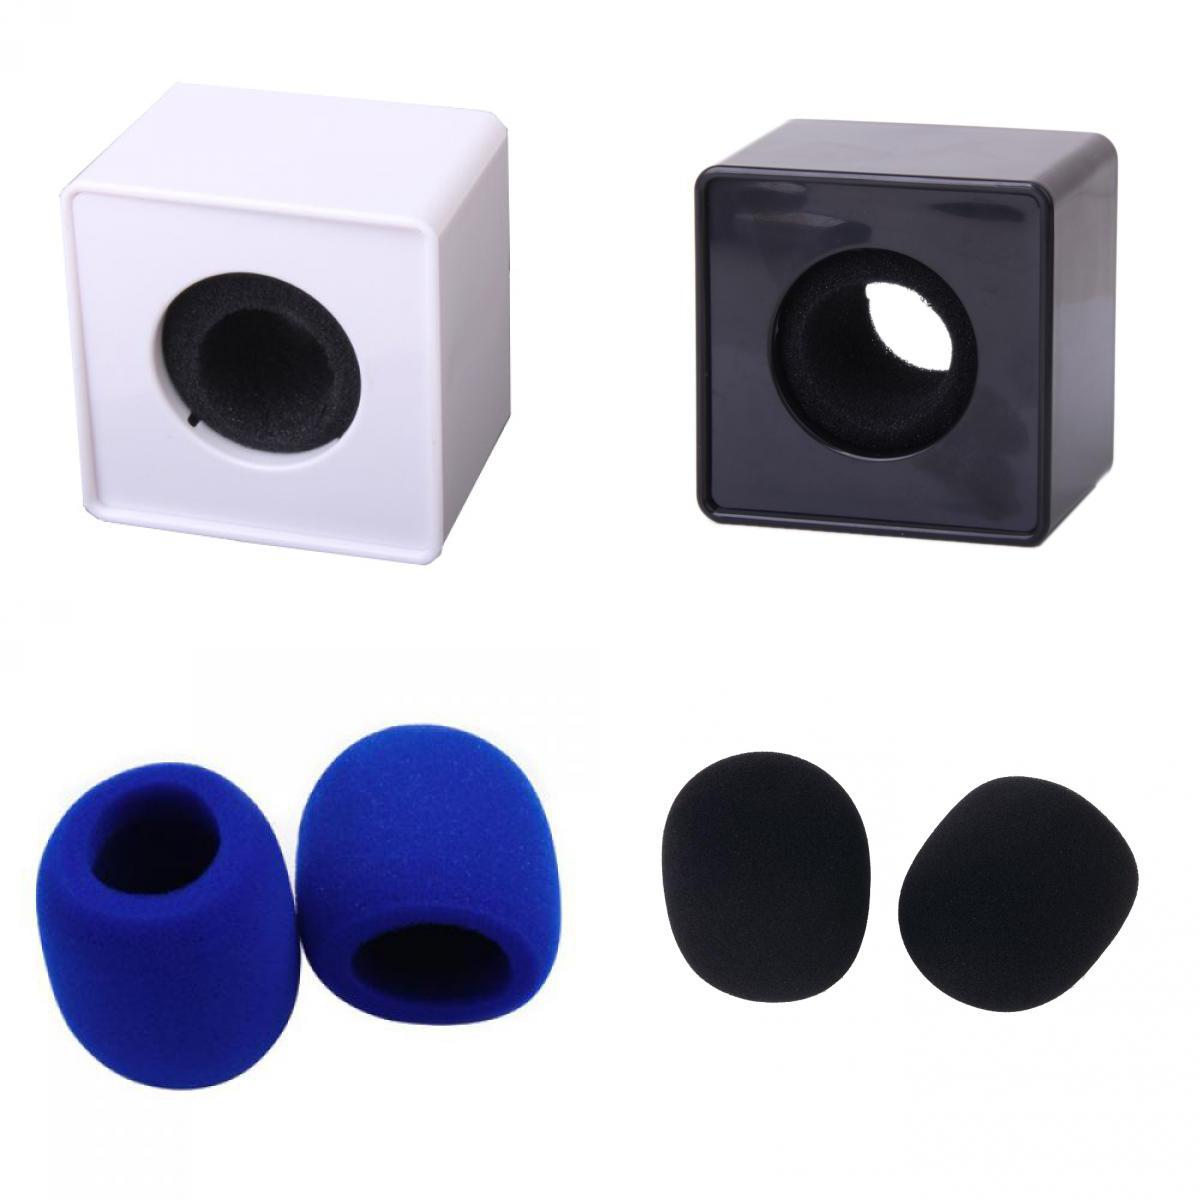 2x ABS Cube Microphone Logo Flag Station + 2 Pairs Mic Foam Covers For Interview